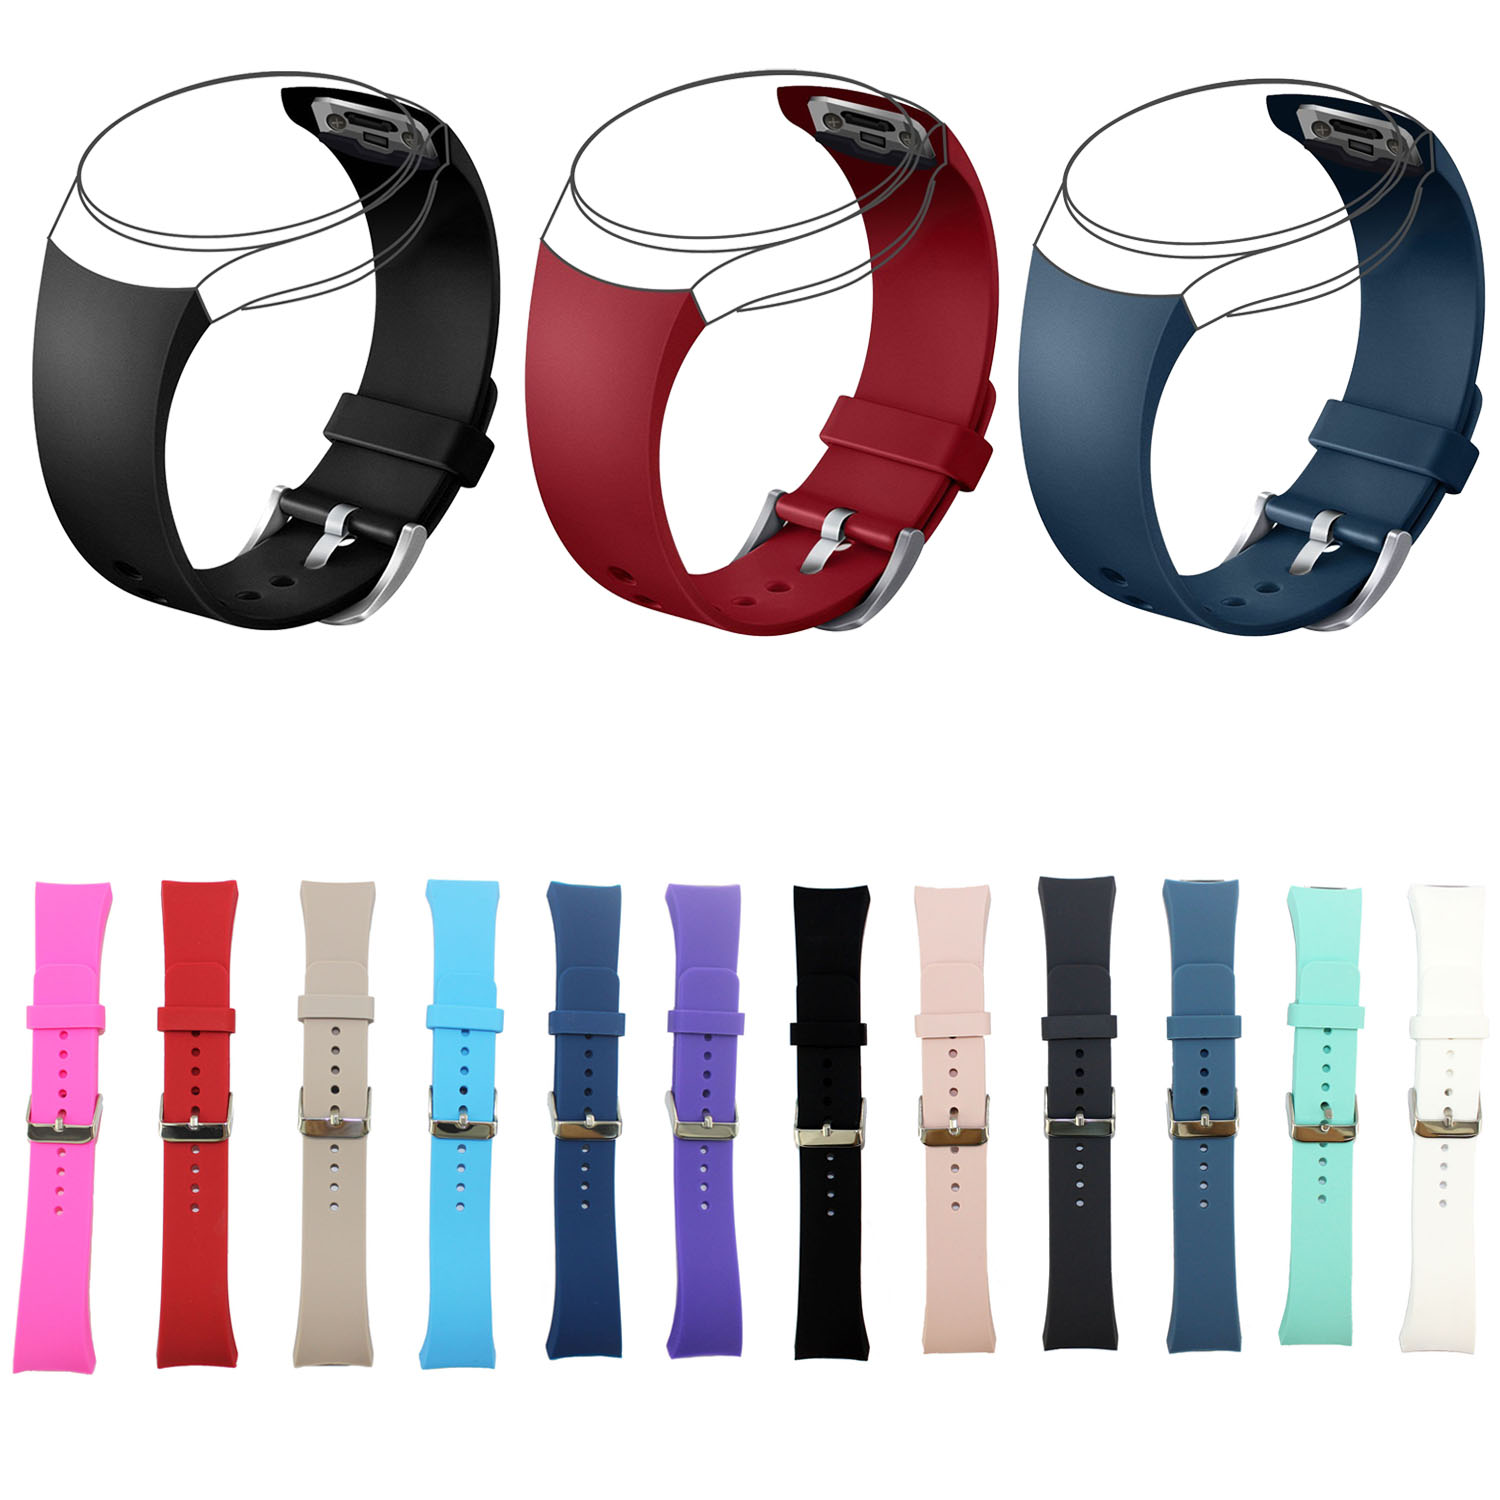 цена на Colorful Sports Silicone Wrist Strap for Samsung Galaxy Gear S2 SM-R720 Band Metal Buckle Rubber Bracelet Replacement Wristbands